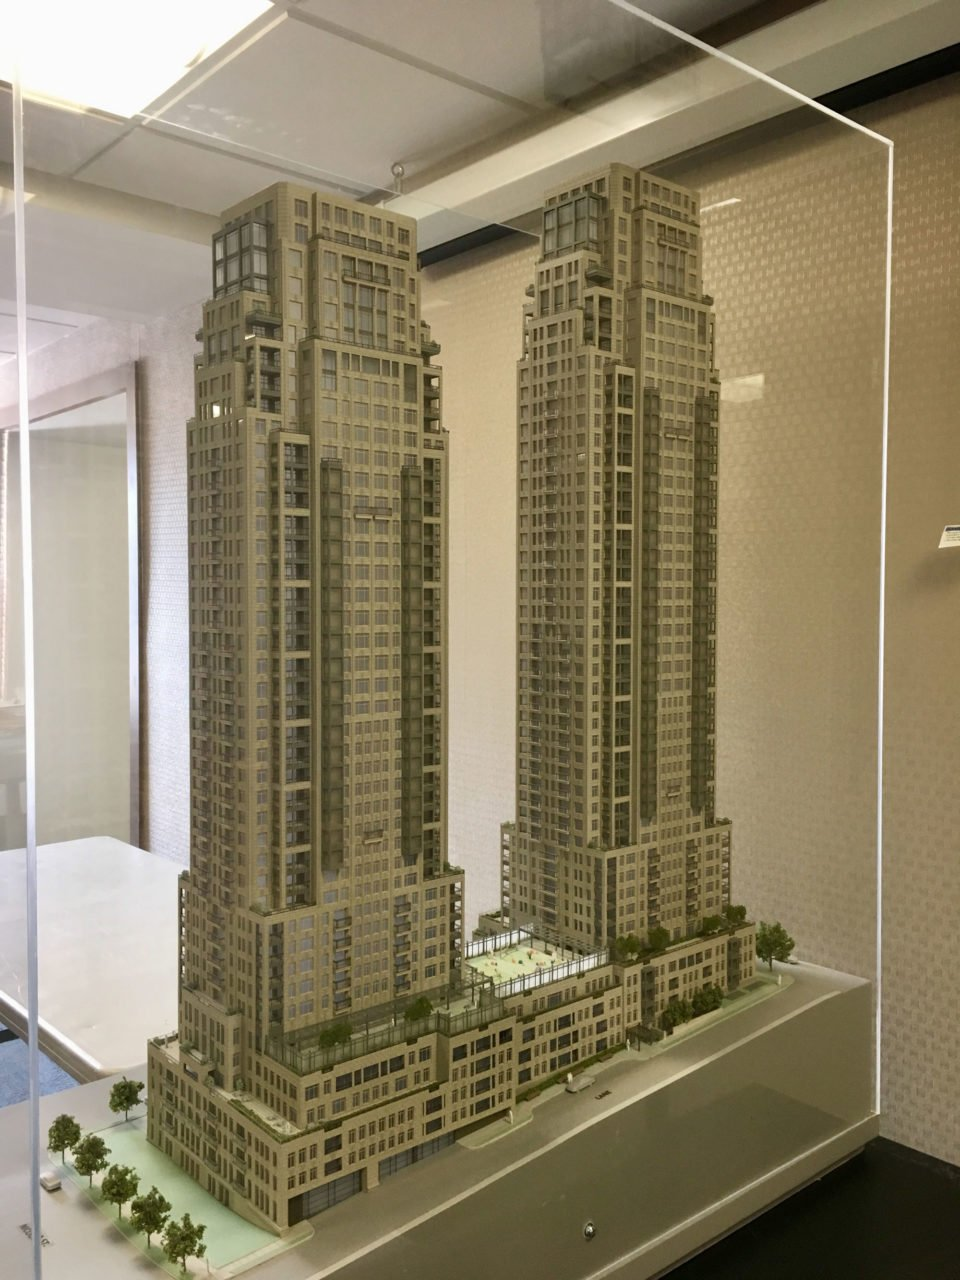 1444 Alberni Street tower models